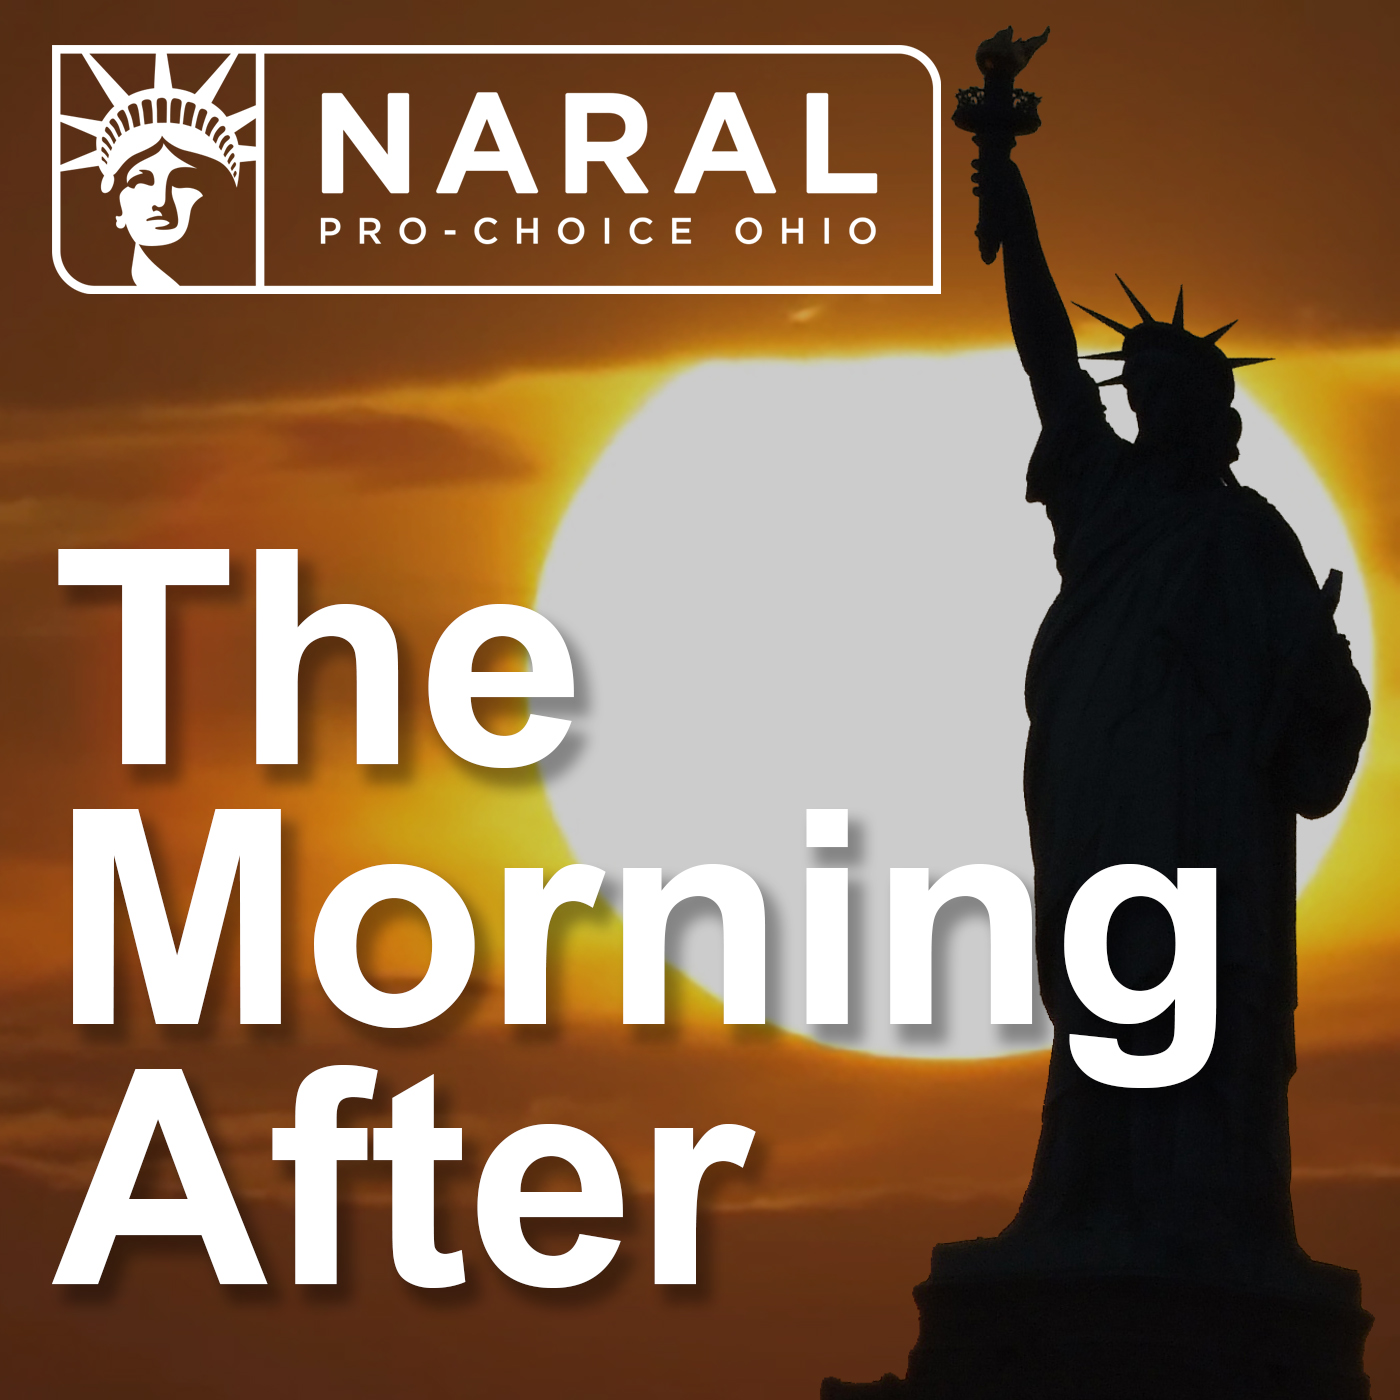 NARAL's The Morning After